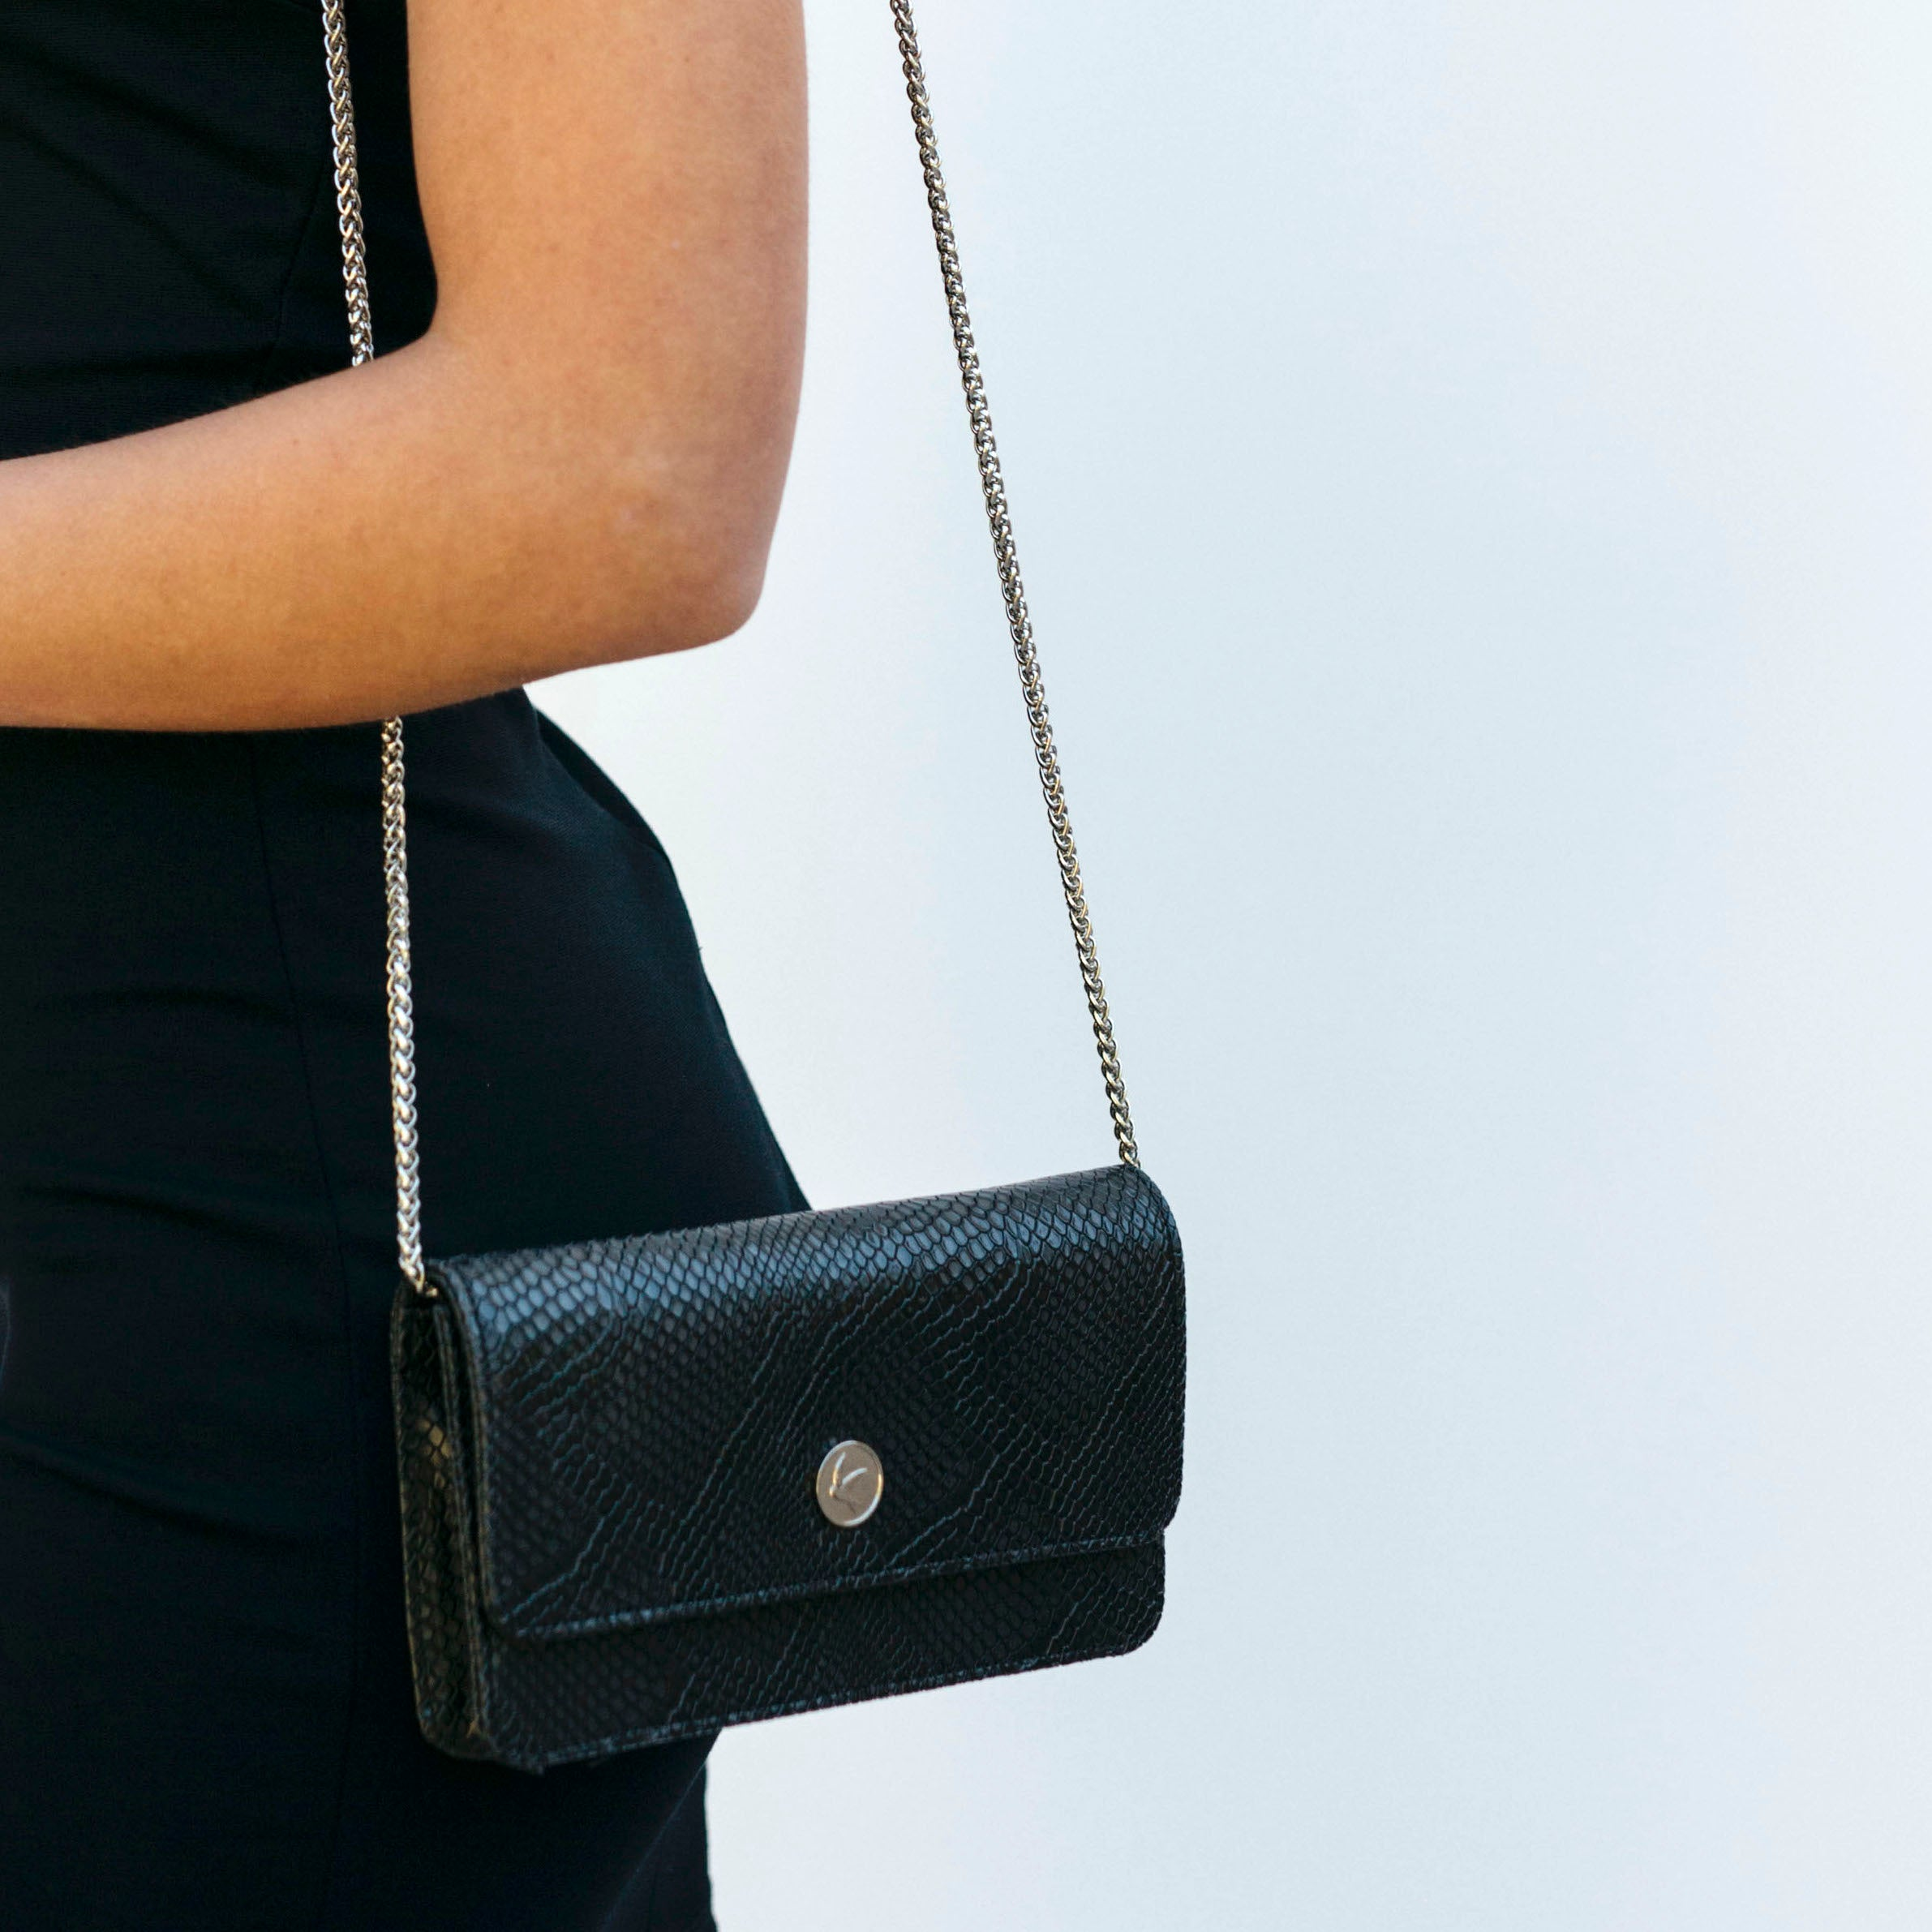 Svala vegan Sara chain wallet in black